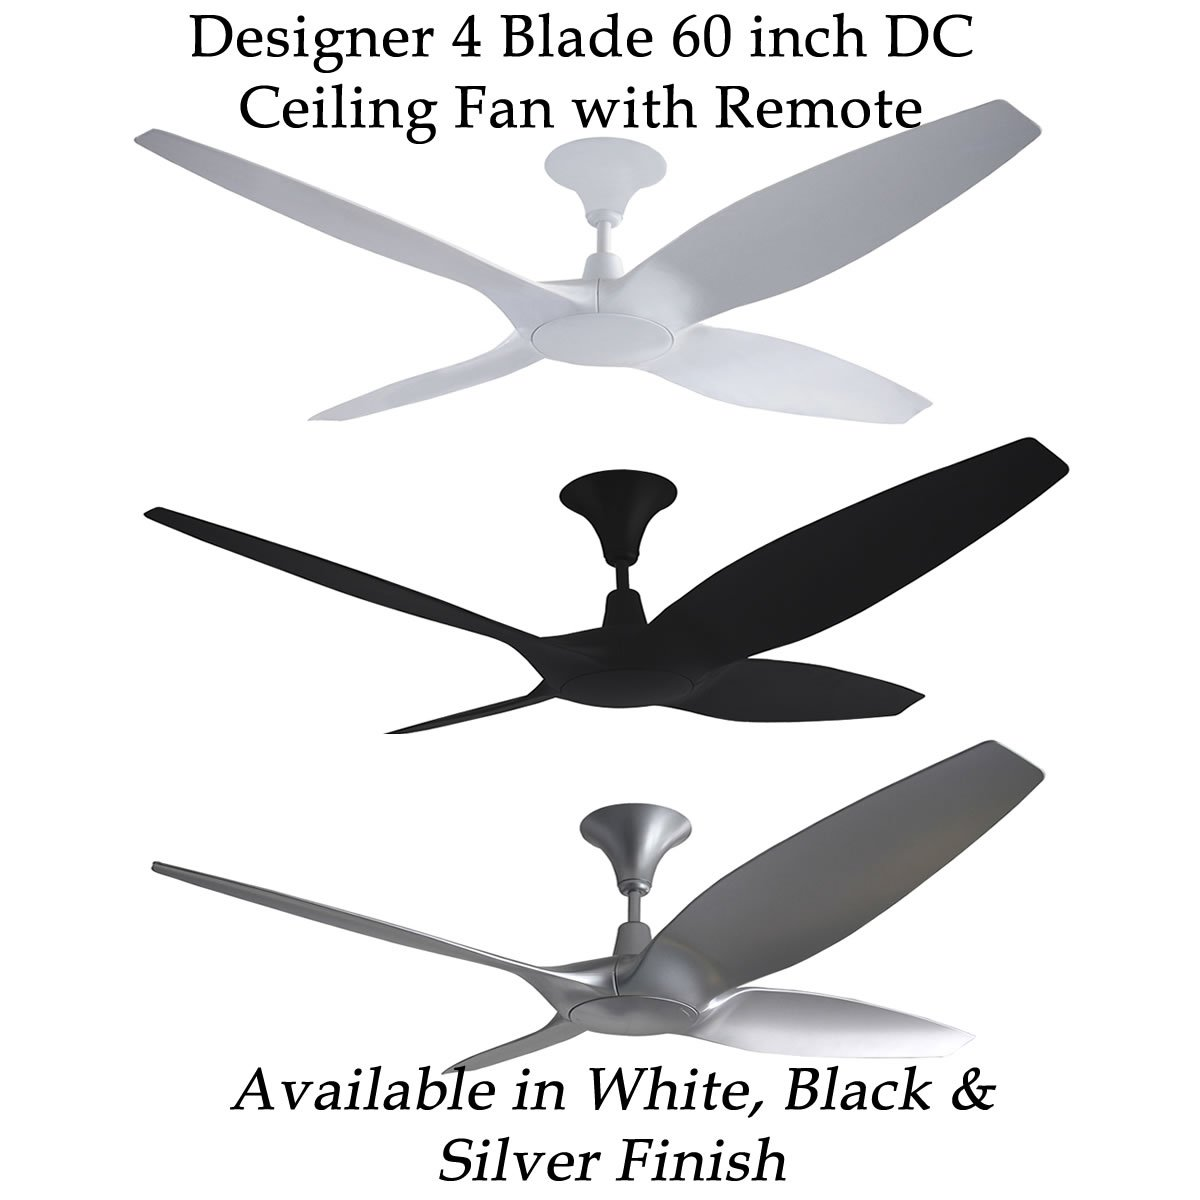 Designer 4 Blade 60 inch DC Ceiling Fan with Remote | Feature Lights